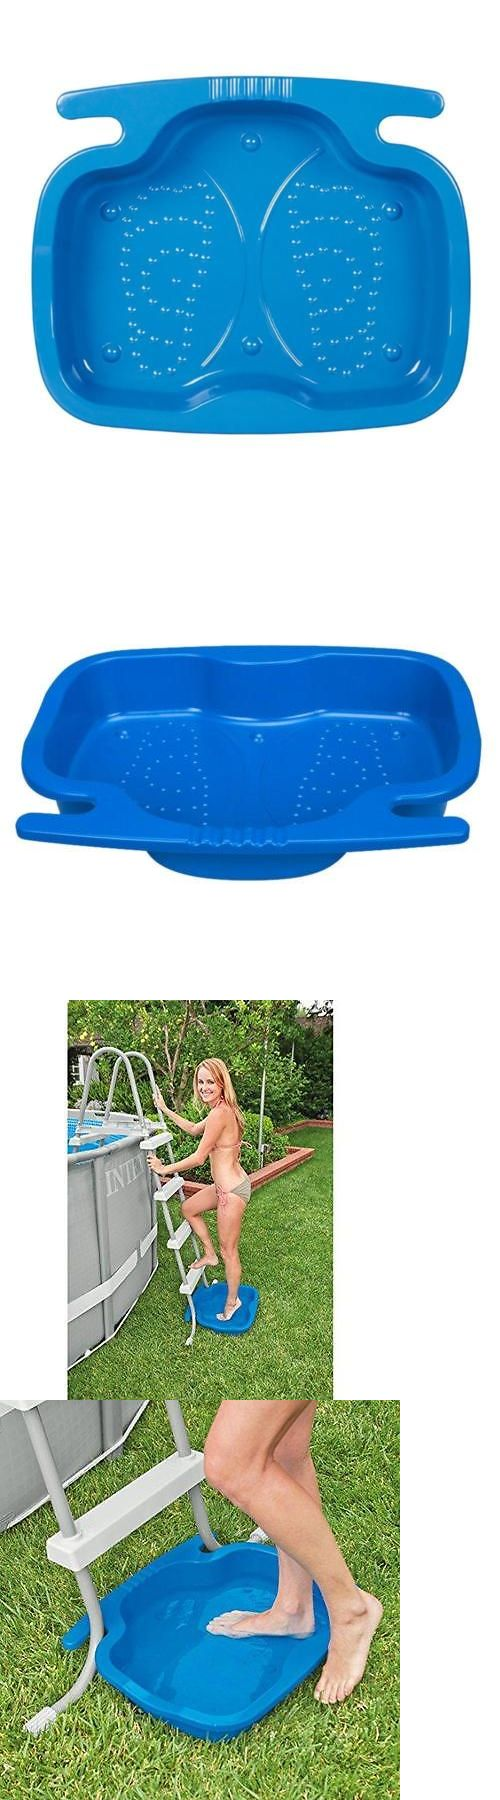 Pool Skimmer Systems and Baskets 181069: Intex Foot Bath For Pool Ladders On Above Ground Swimming Pools -> BUY IT NOW ONLY: $34.32 on eBay!